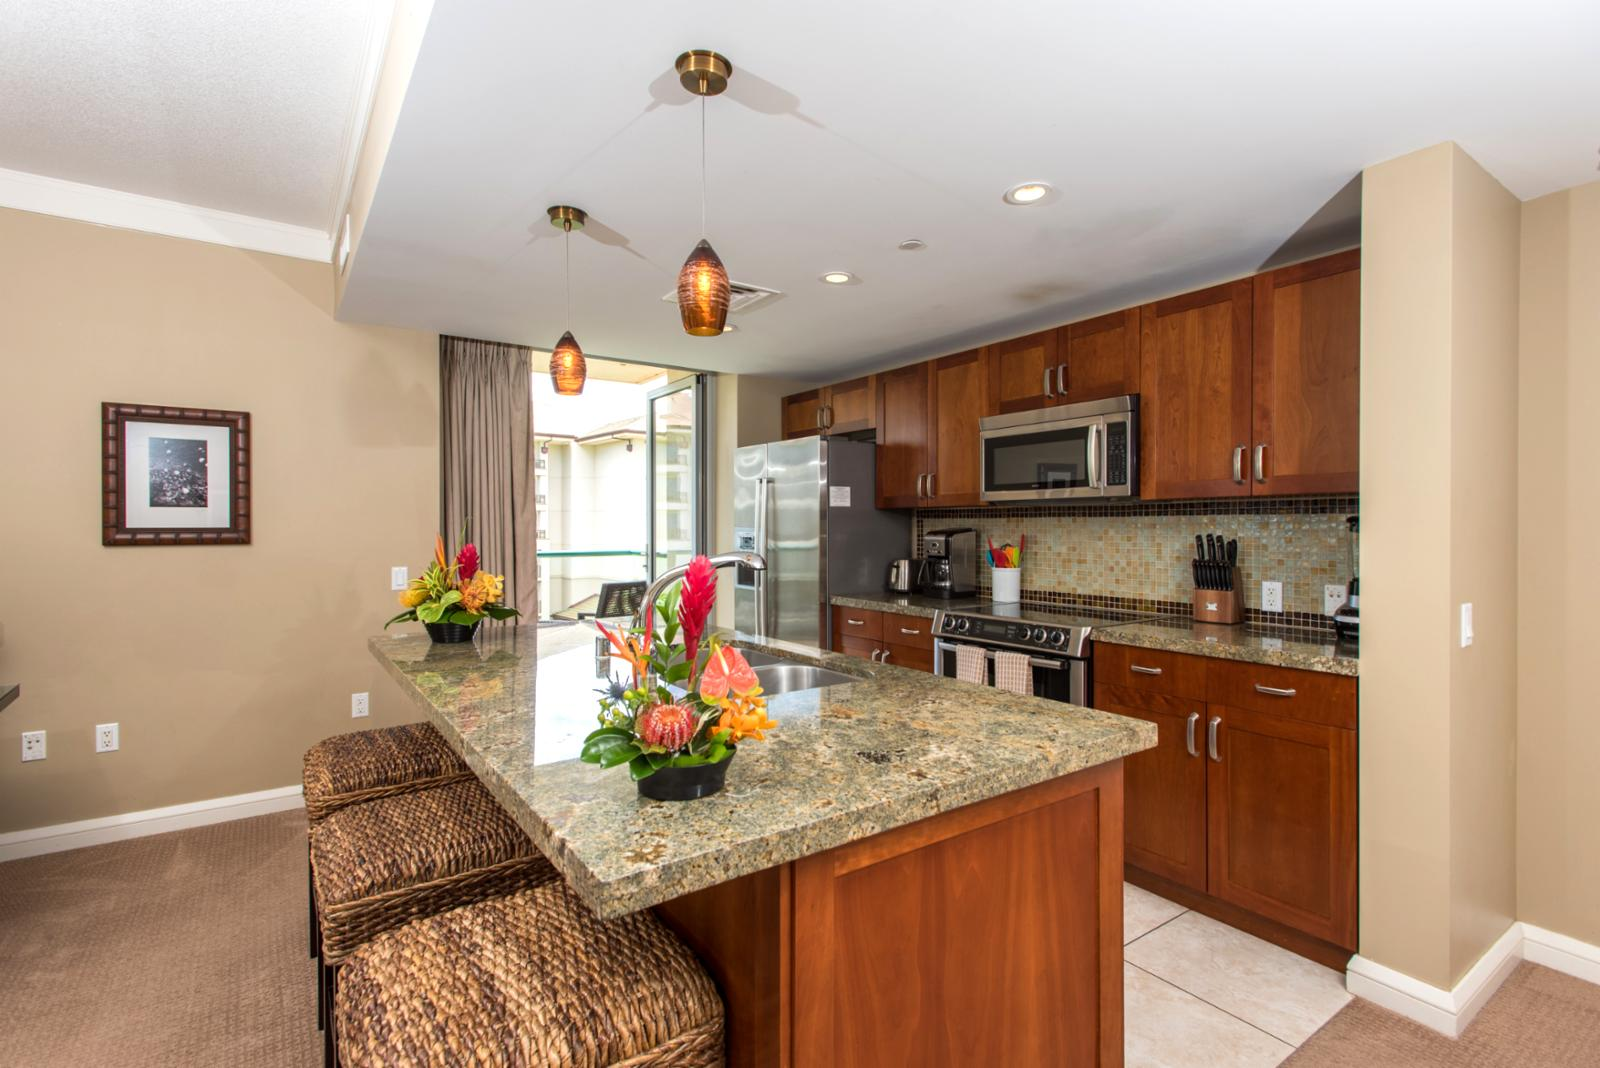 Large kitchen with top of the line appliances perfect for cooking nightly meals.